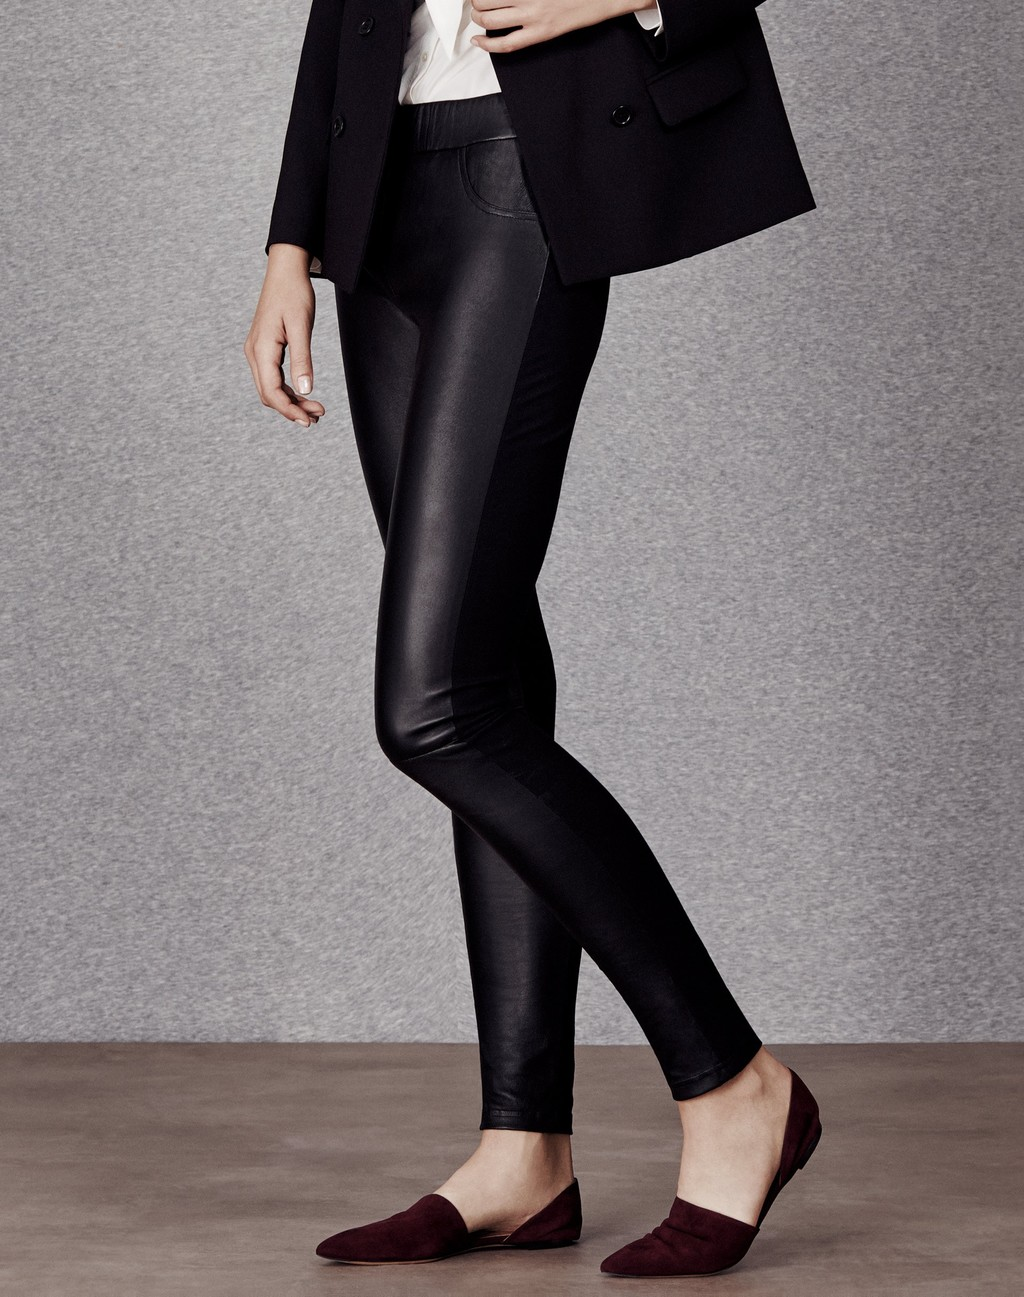 Leather And Gabardine Stretch Legging Black - length: standard; pattern: plain; style: leggings; waist detail: elasticated waist; waist: low rise; predominant colour: black; occasions: evening, creative work; fibres: leather - 100%; texture group: leather; fit: skinny/tight leg; pattern type: fabric; season: a/w 2015; wardrobe: highlight